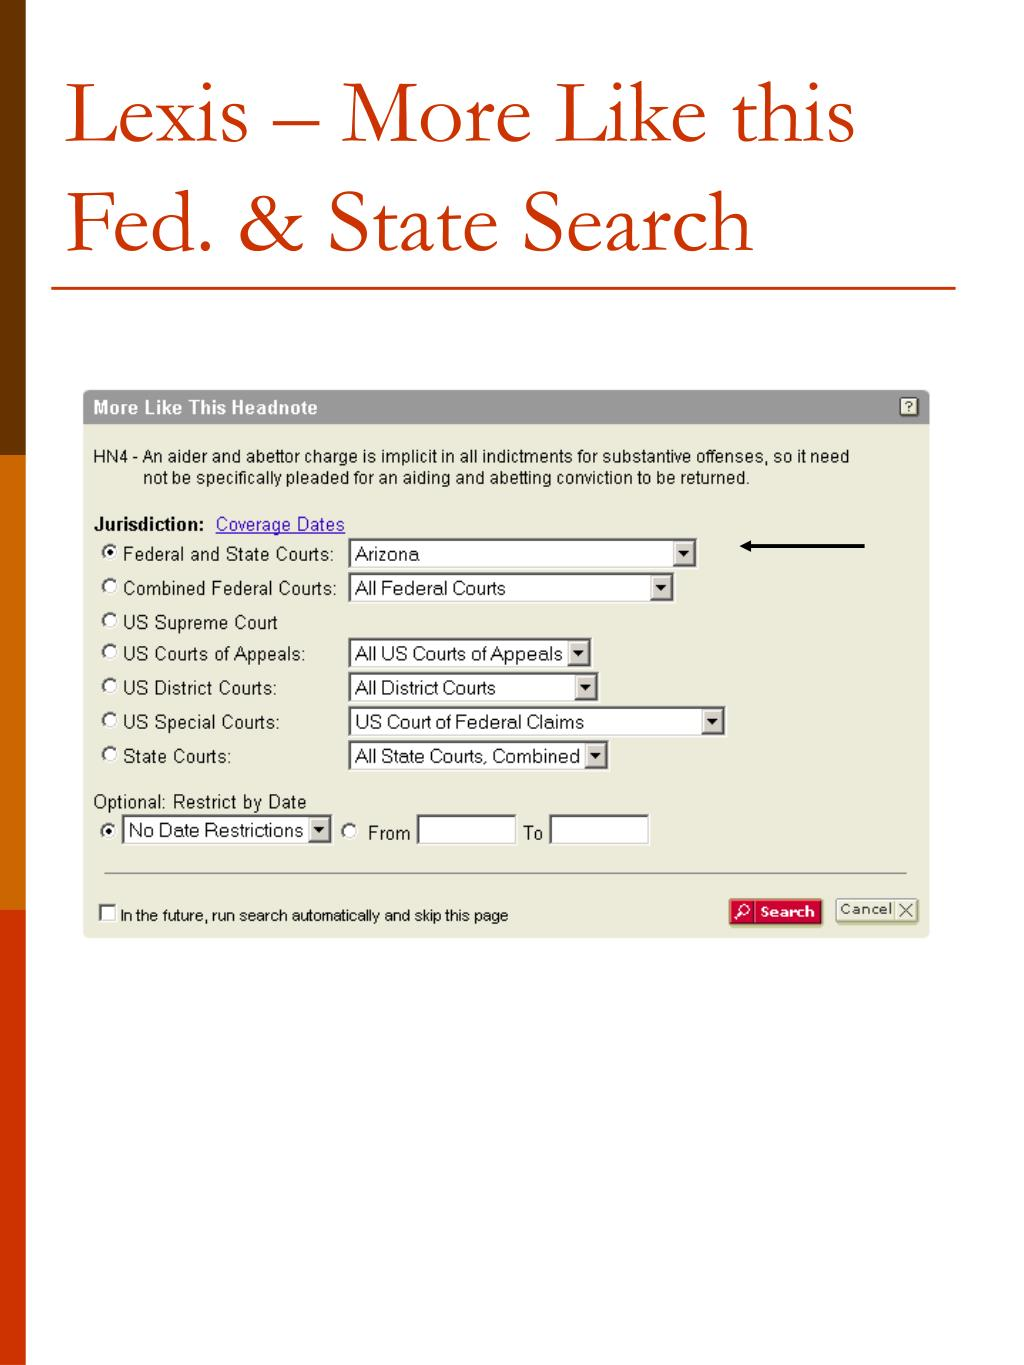 Lexis – More Like this Fed. & State Search